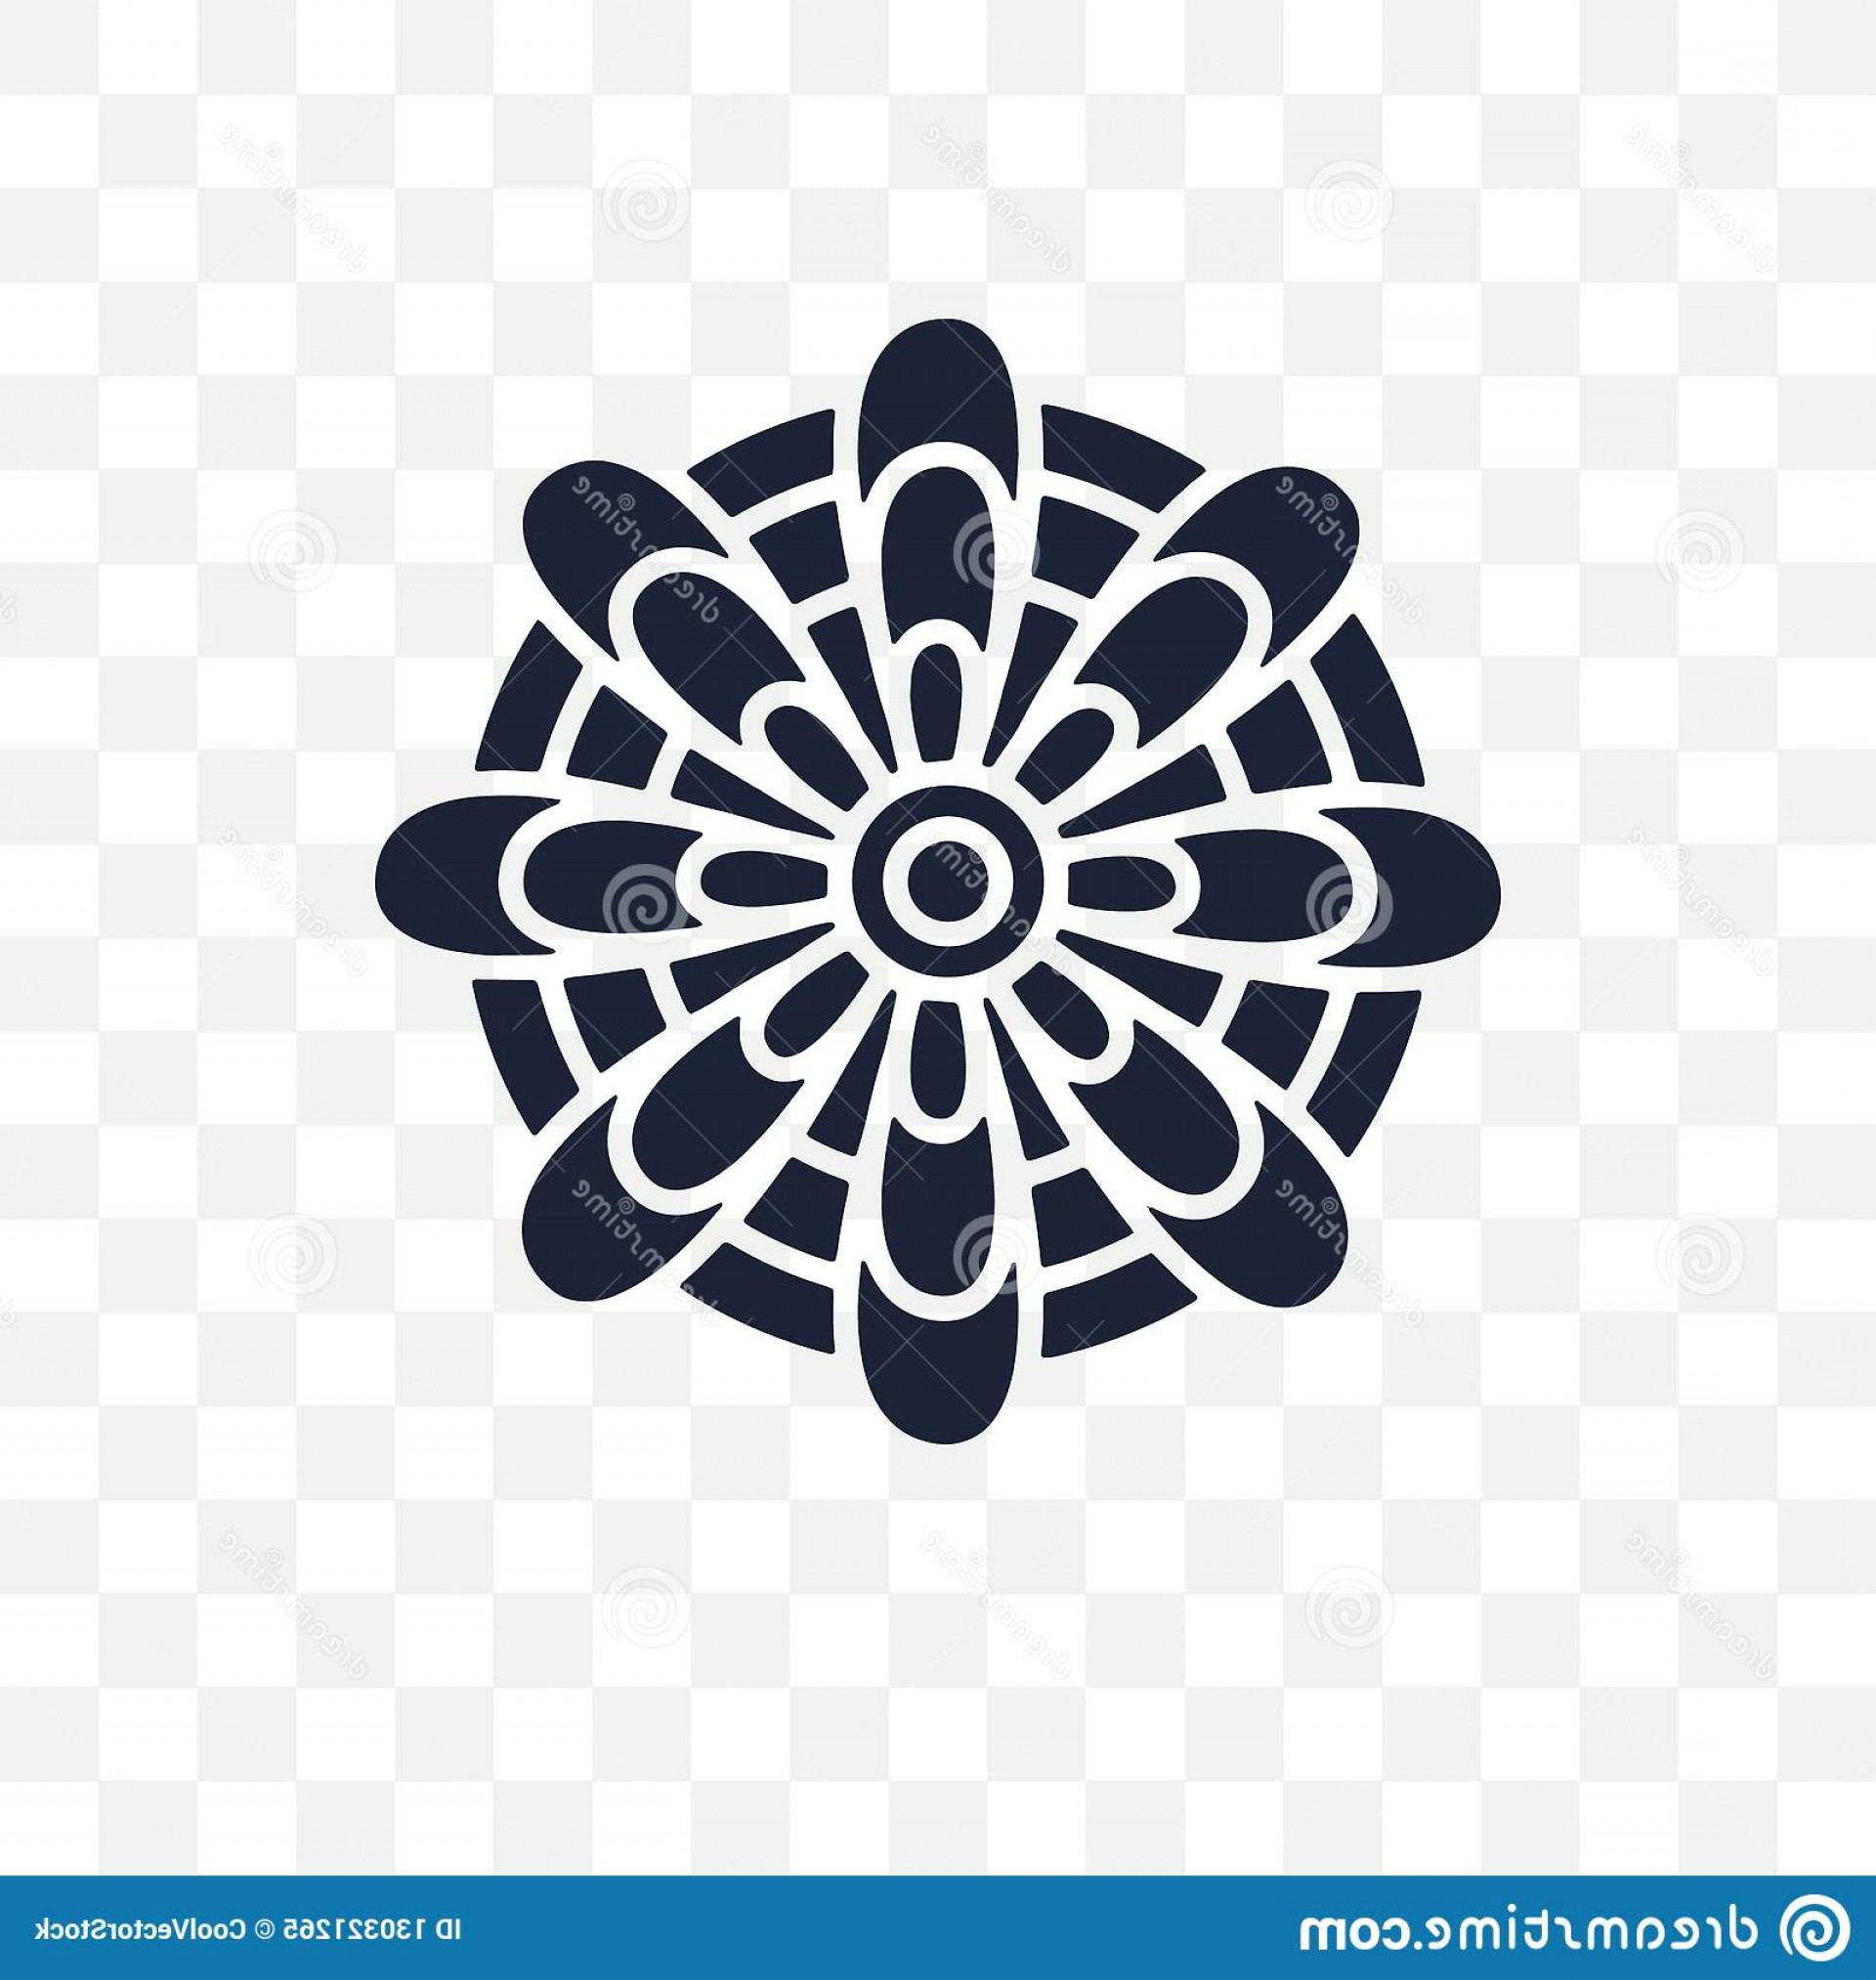 Mandala Vector Simple Compass: Mandala Transparent Icon Symbol Design India Colle Collection Simple Element Vector Illustration Background Image